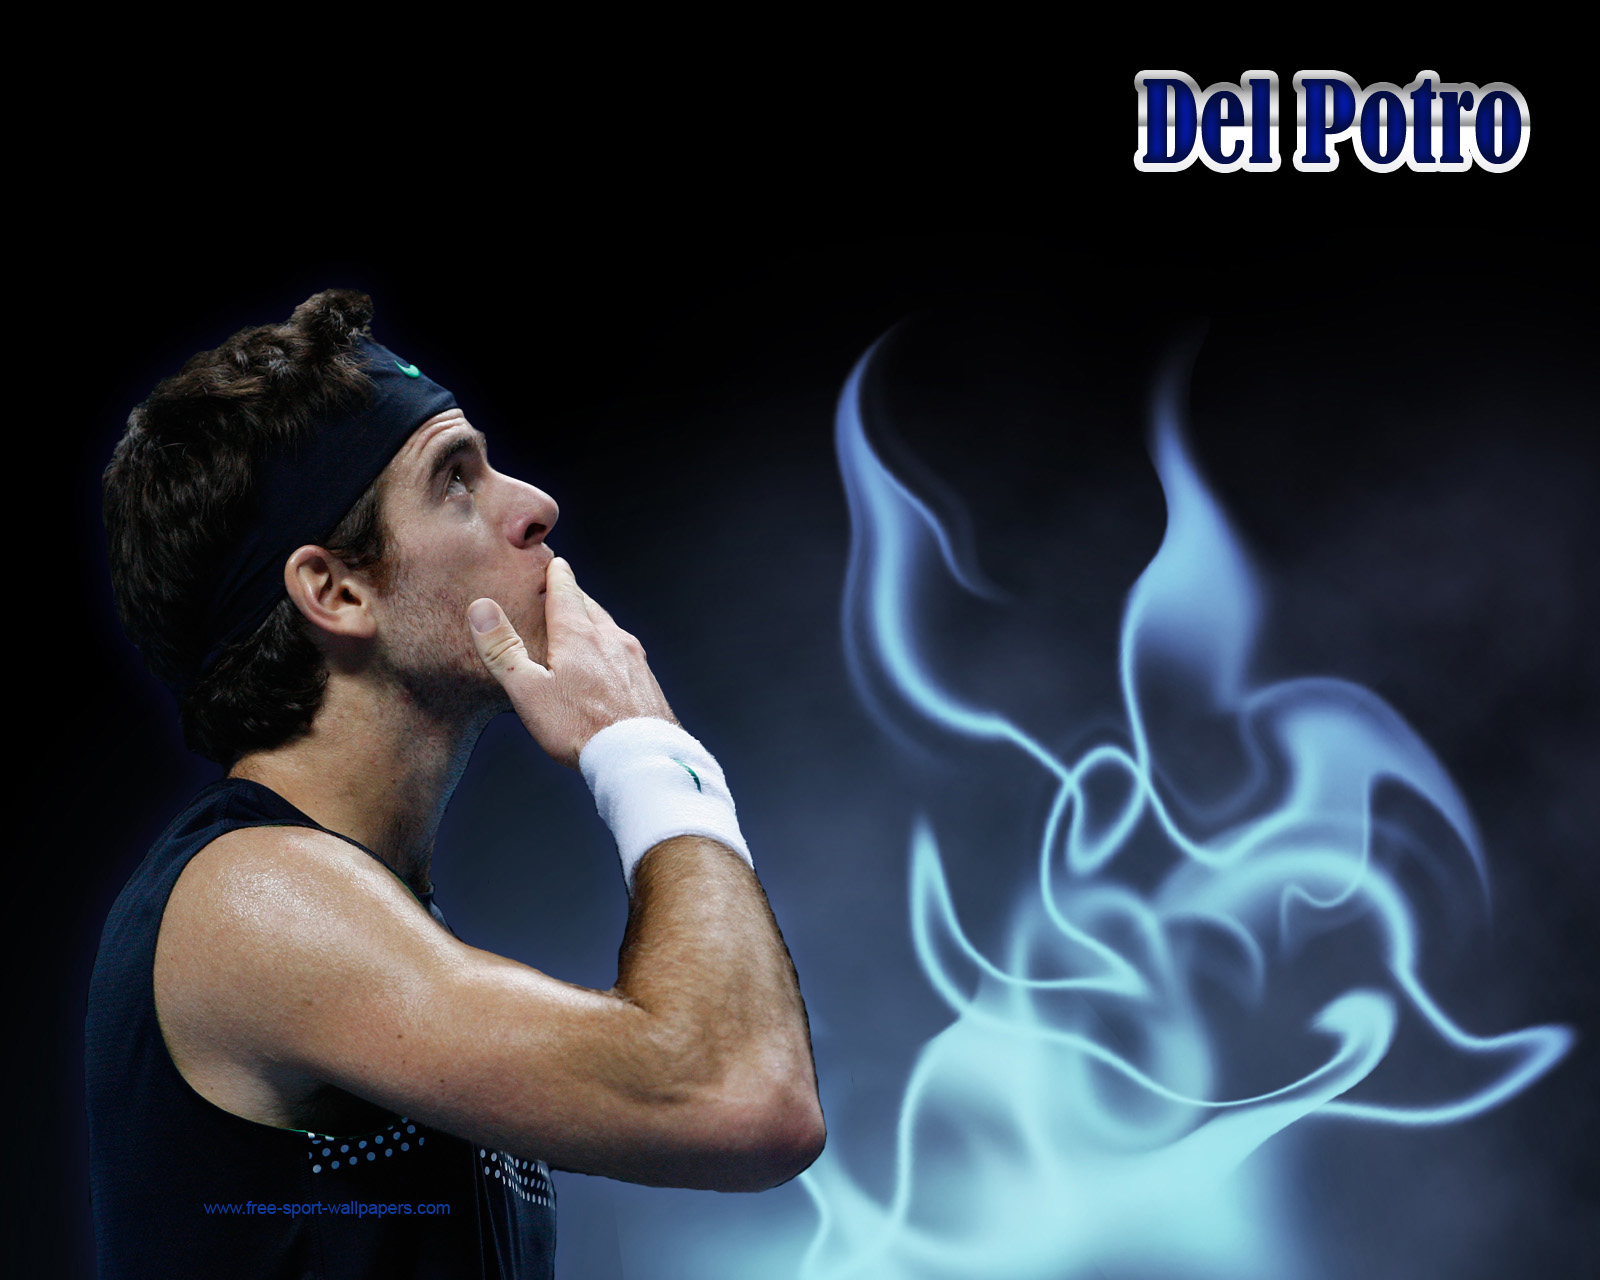 Michael Jordan: Juan Martin del Potro Wallpapers